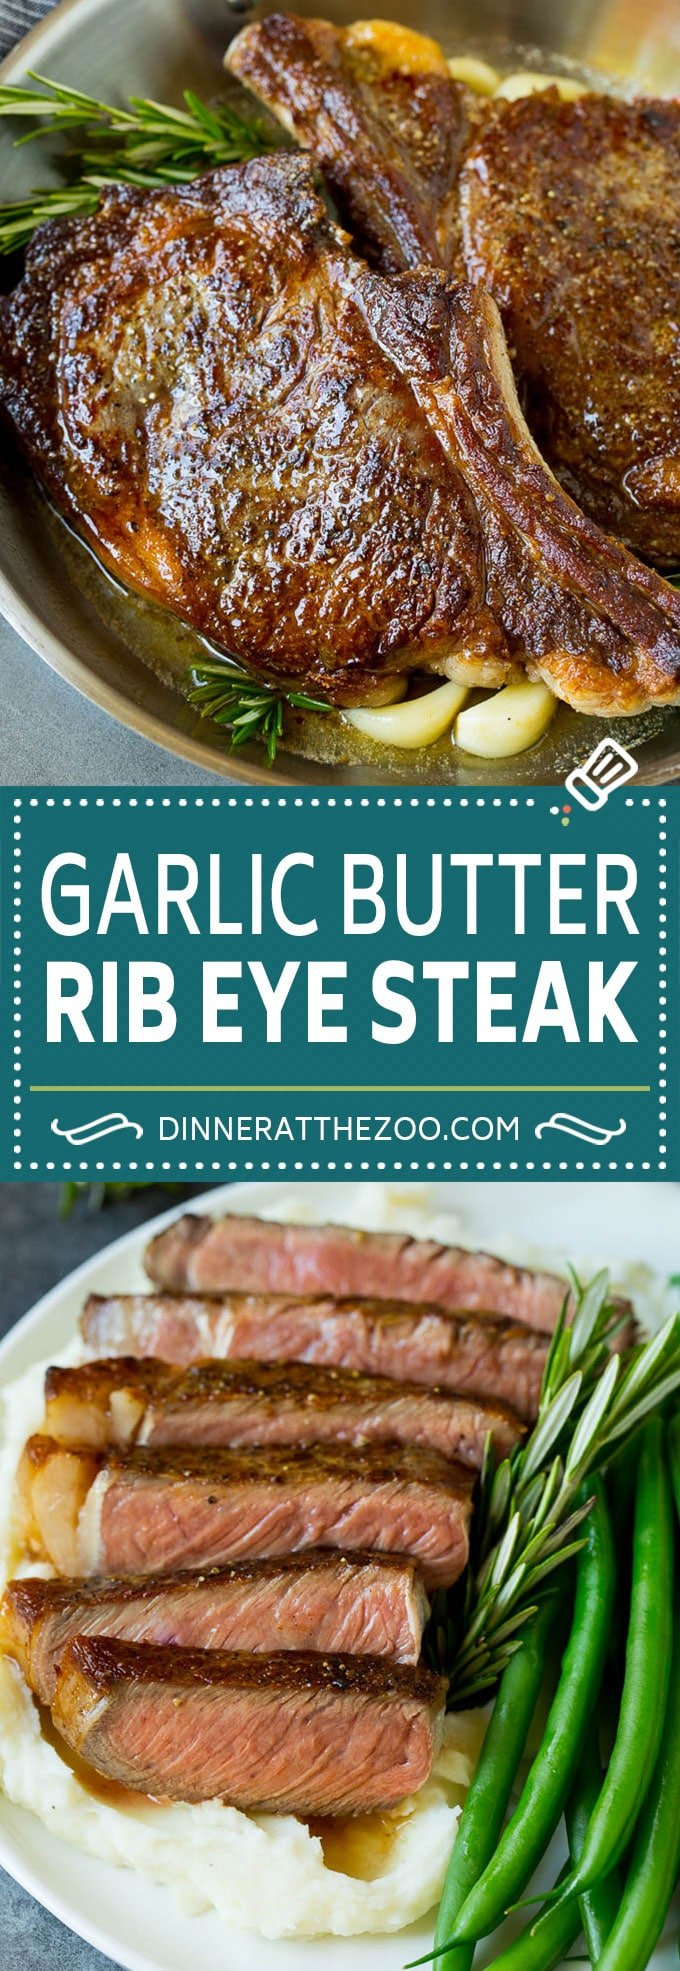 This rib eye steak recipe is tender and juicy beef seared to golden brown perfection, and topped with garlic butter and herbs.